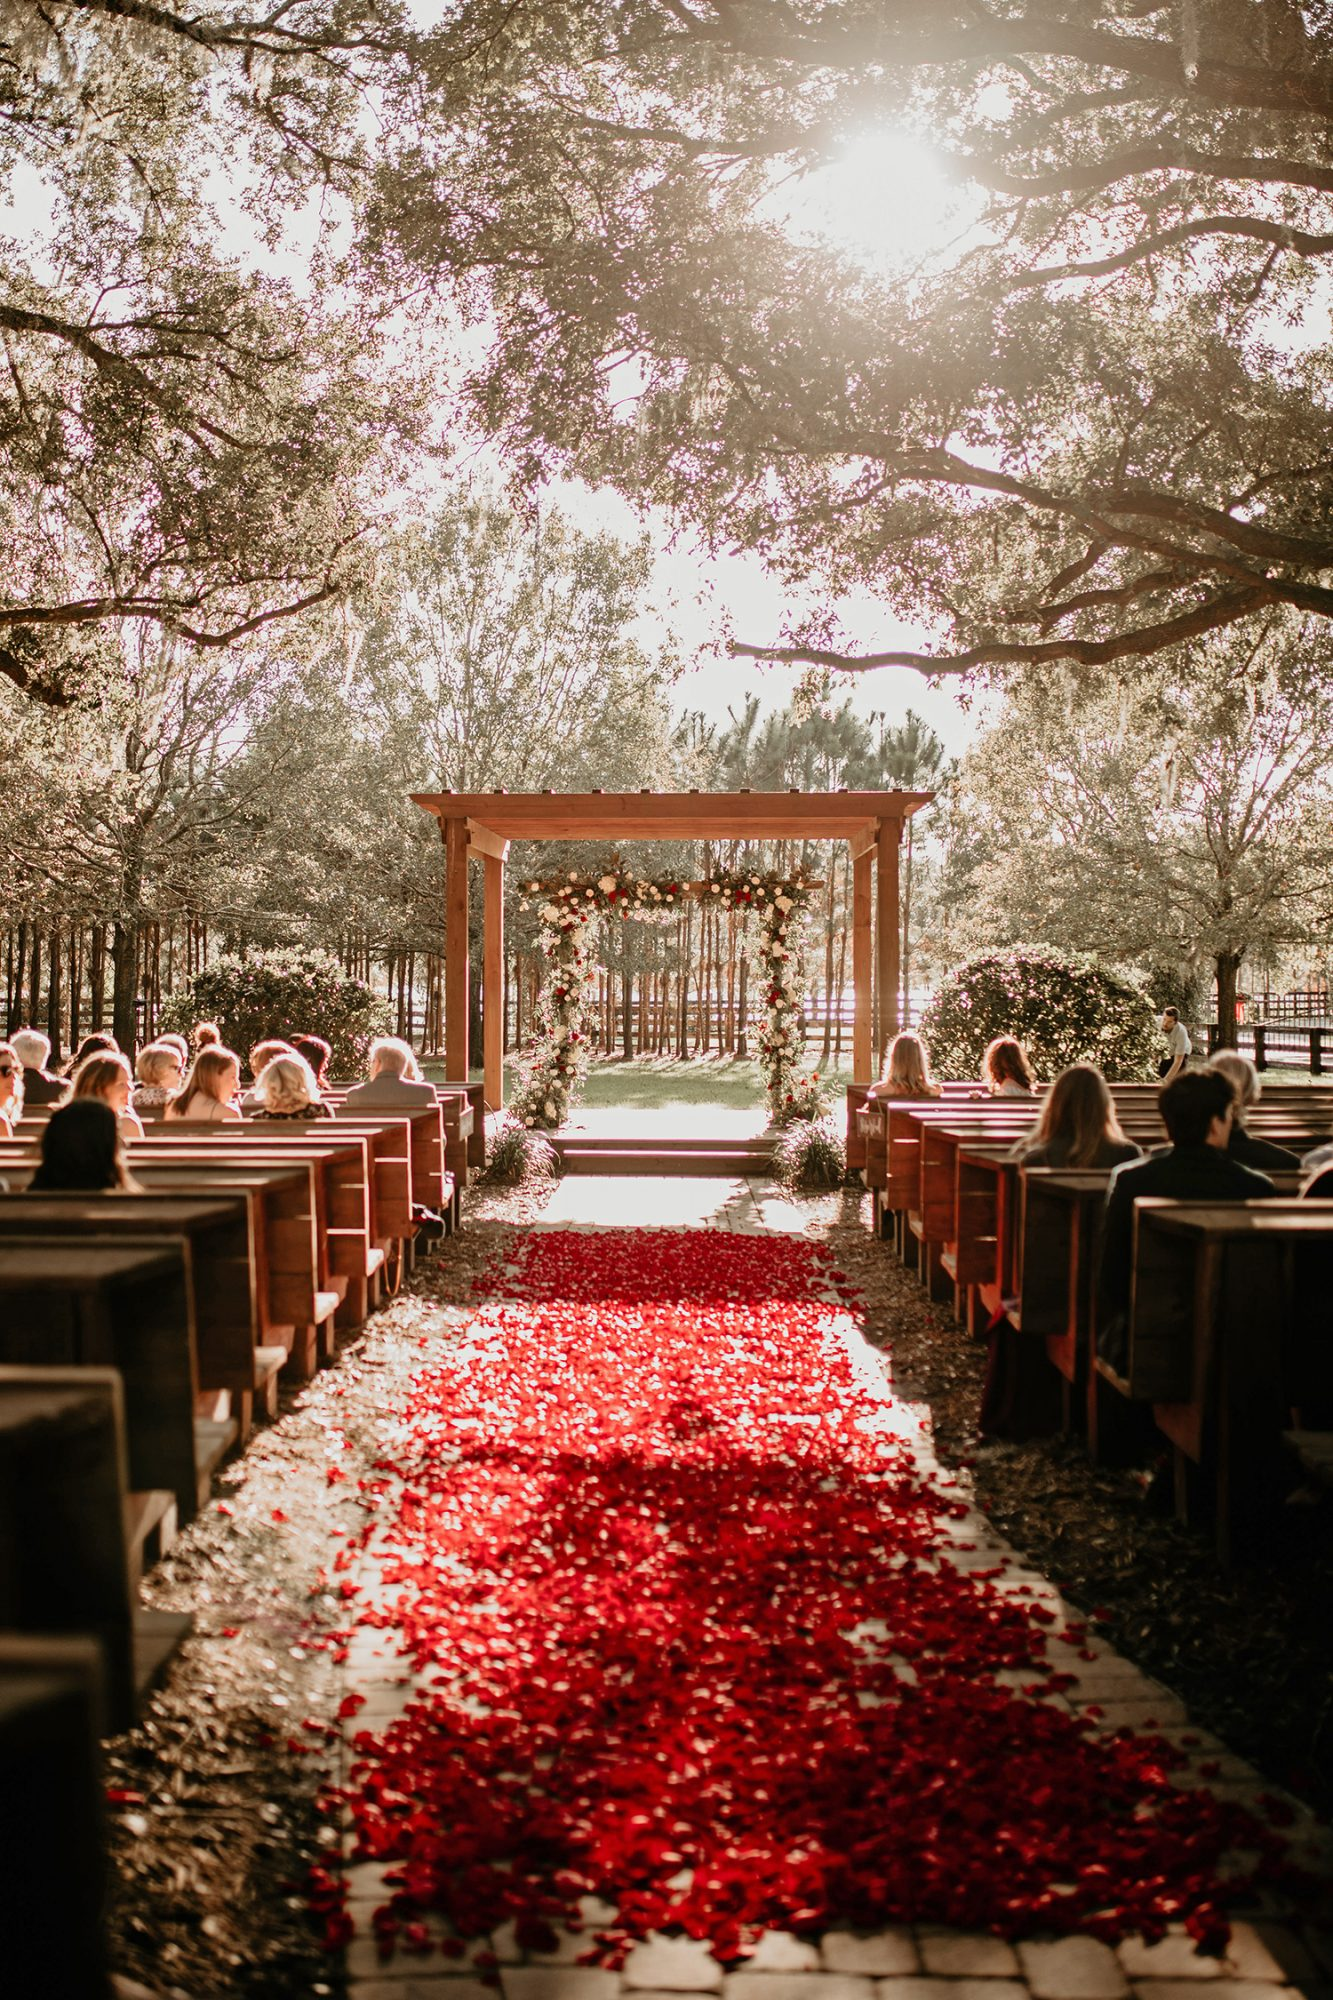 aerielle dyan wedding outdoor ceremony setting